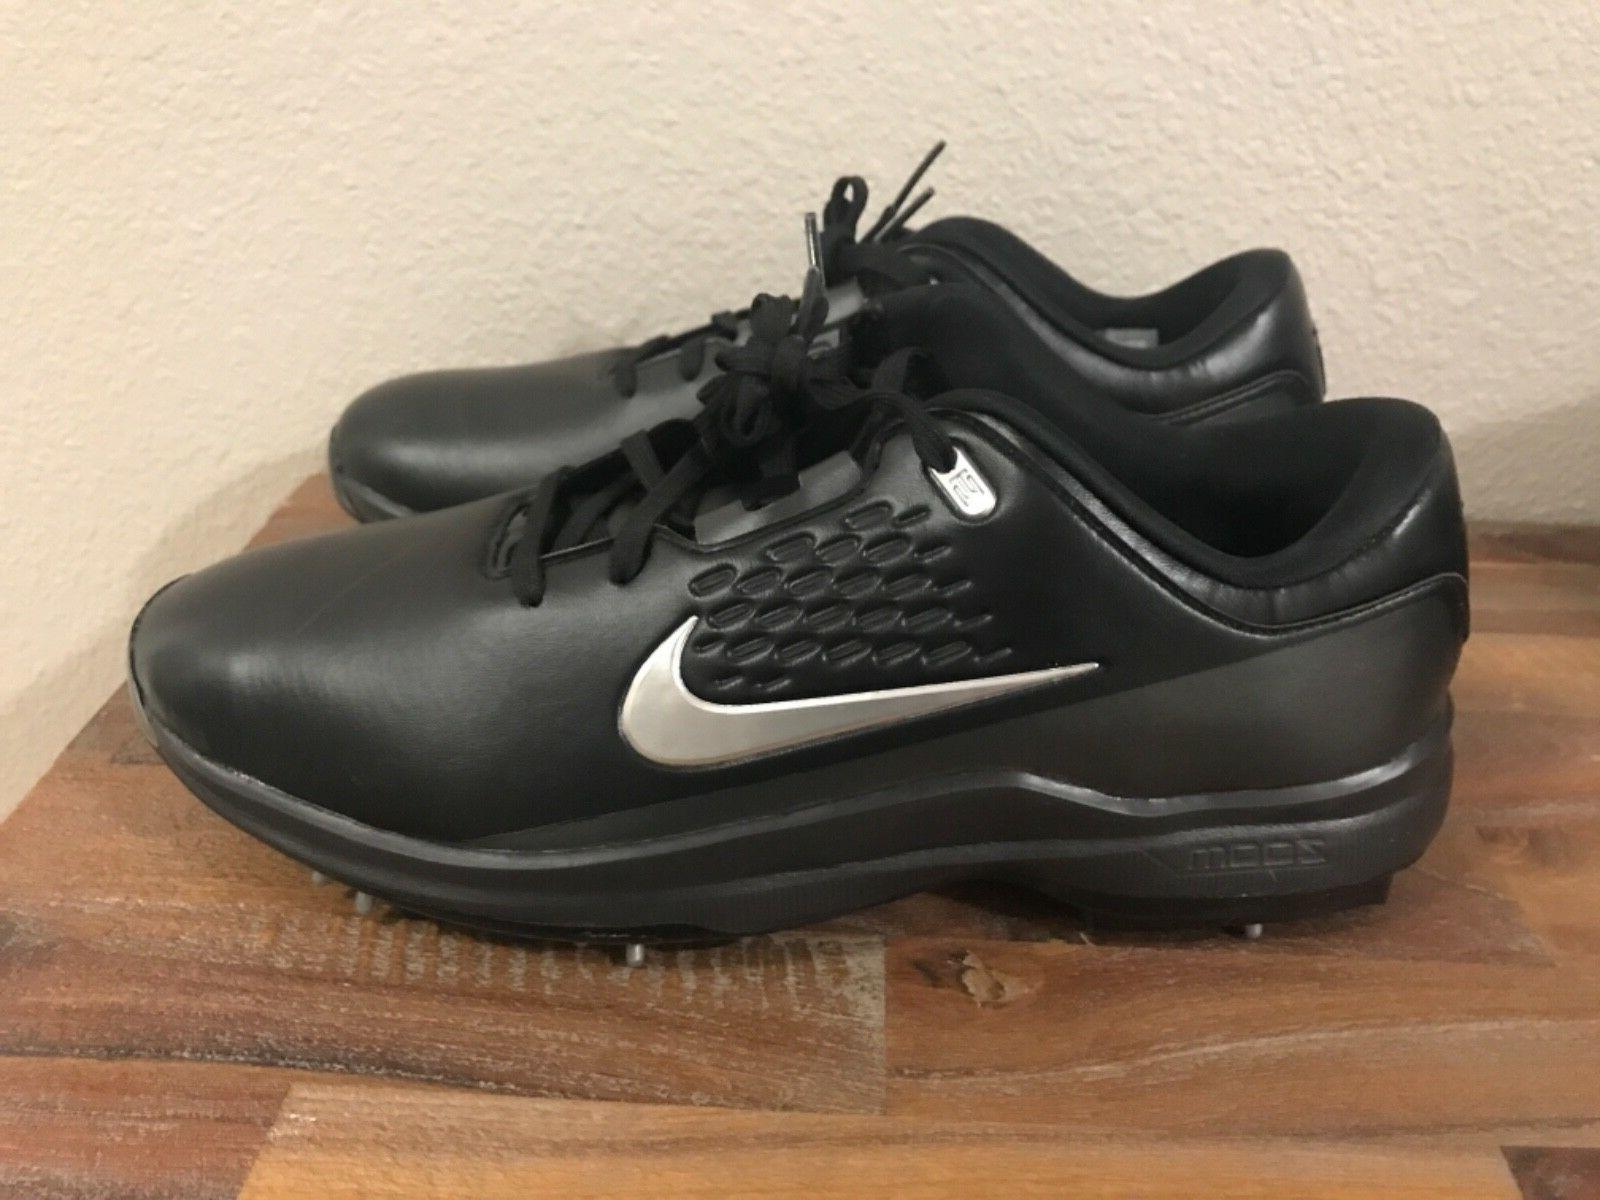 Nike Air Zoom TW71 Tiger Woods Golf Shoes